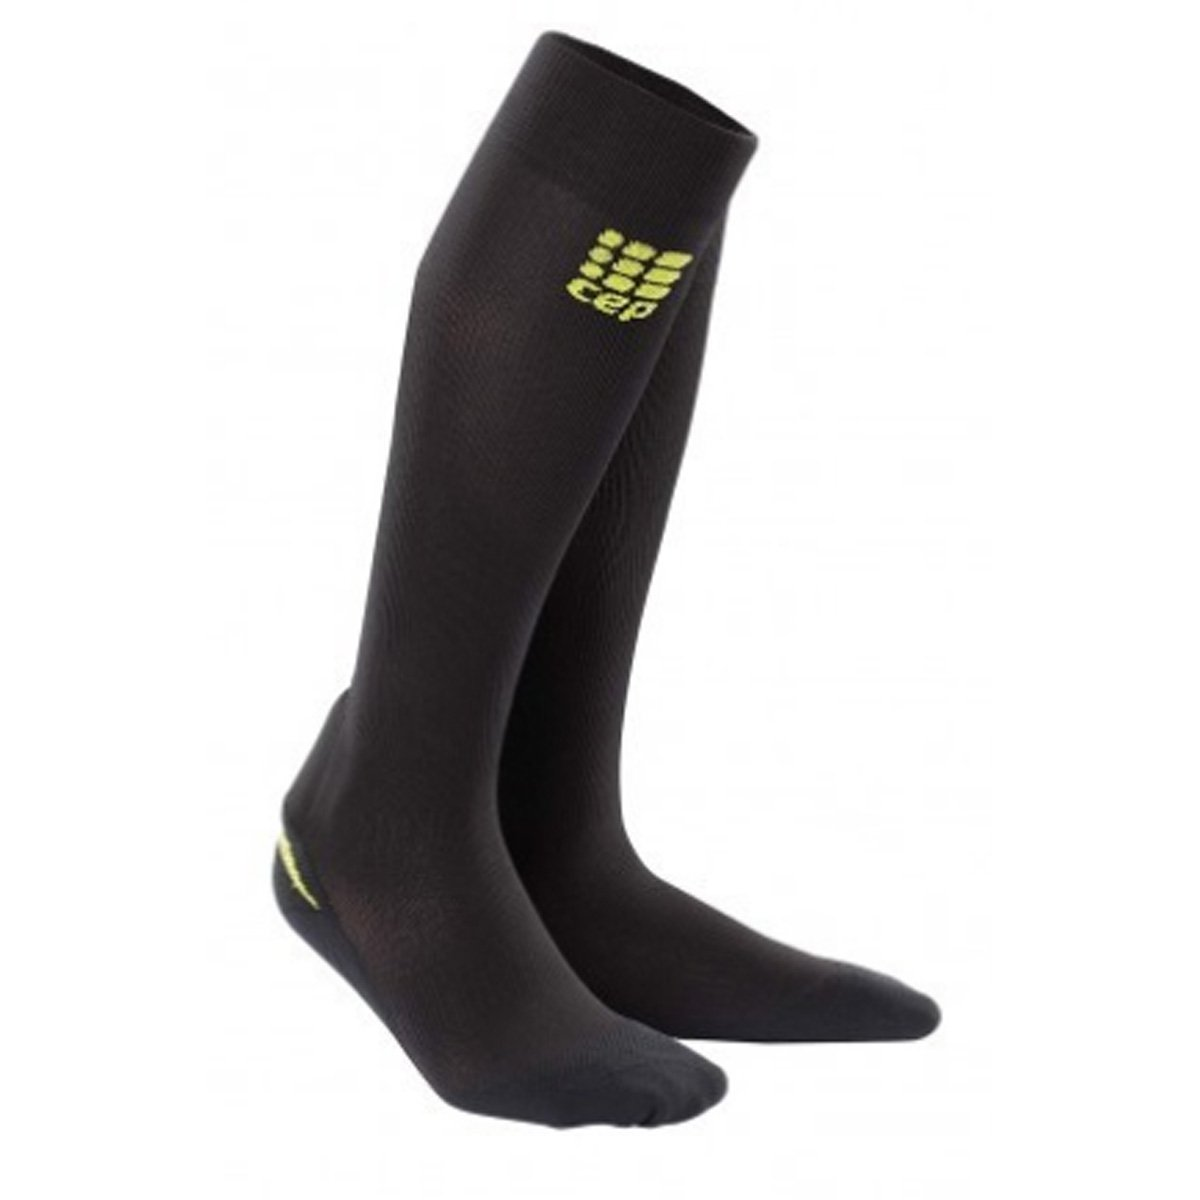 CEP Ortho Achilles Support Socks